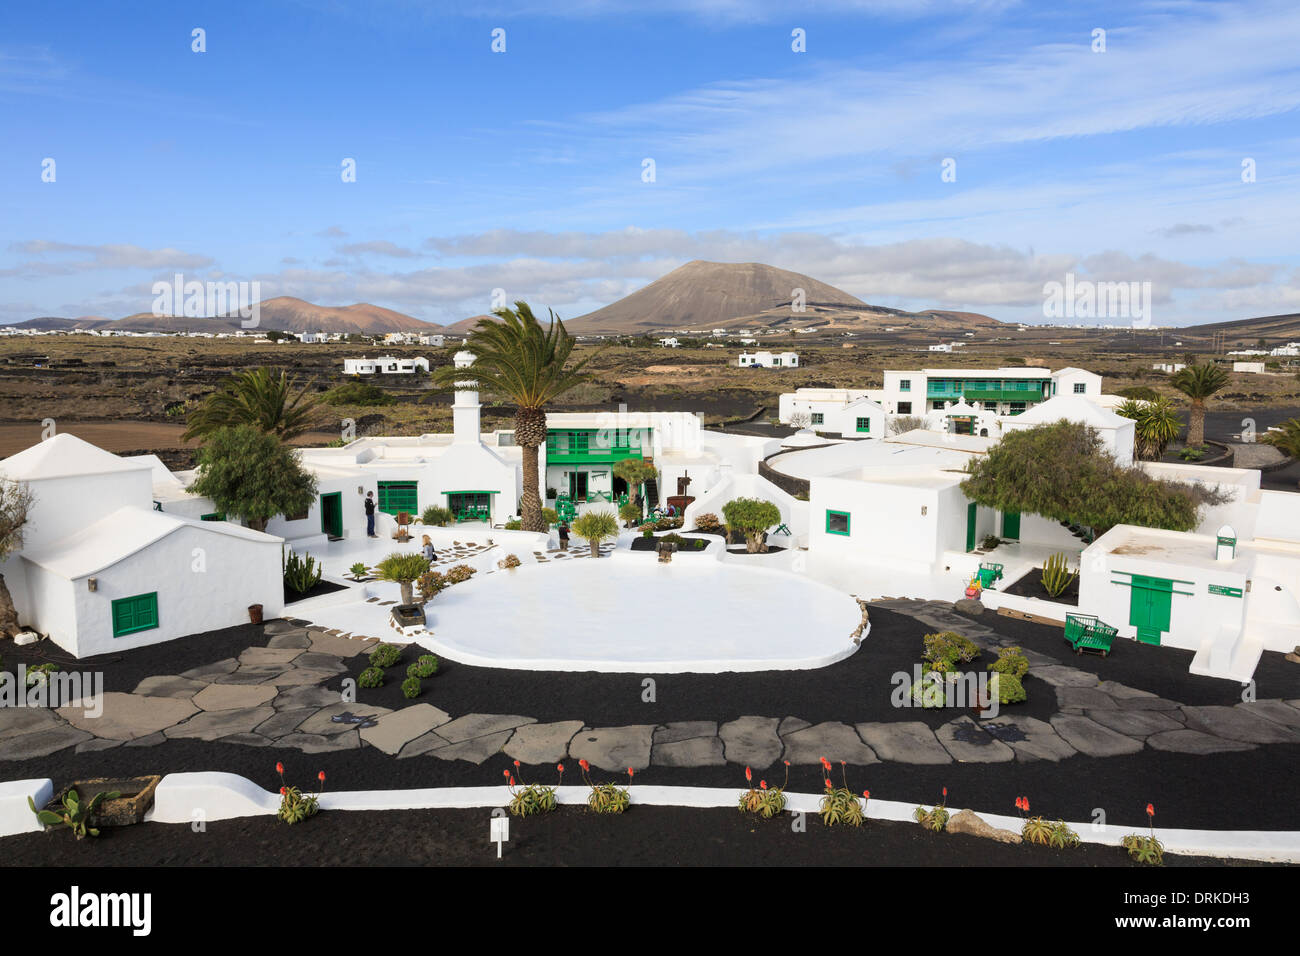 Casa Museo y Monumento al Campesino Visitors Centre and museum in Canarian style architecture. Lanzarote Canary Islands - Stock Image